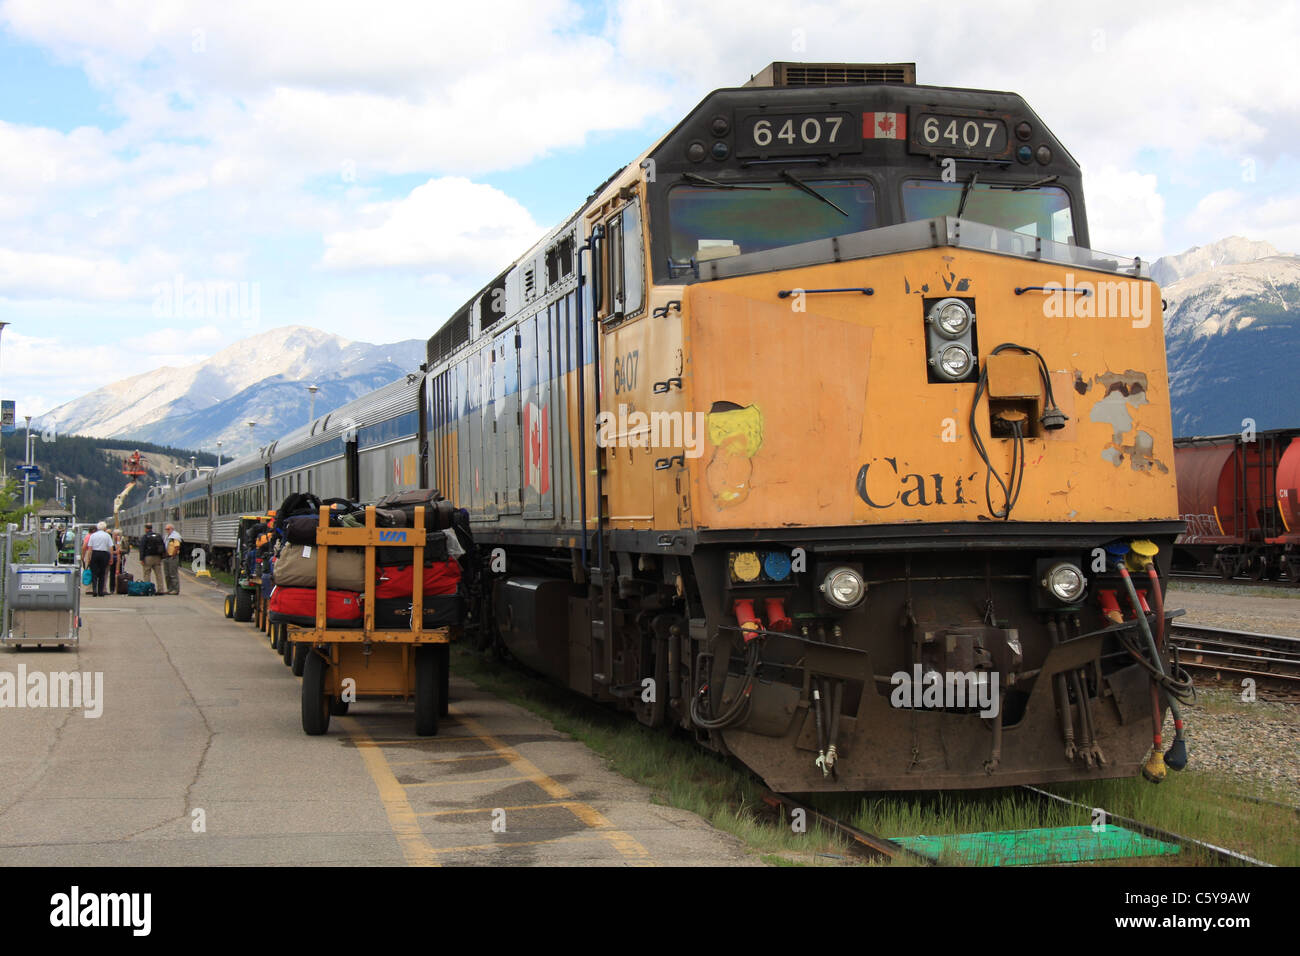 The Canadian, a train that travels the breadth of Canada, at Jasper train station - Stock Image